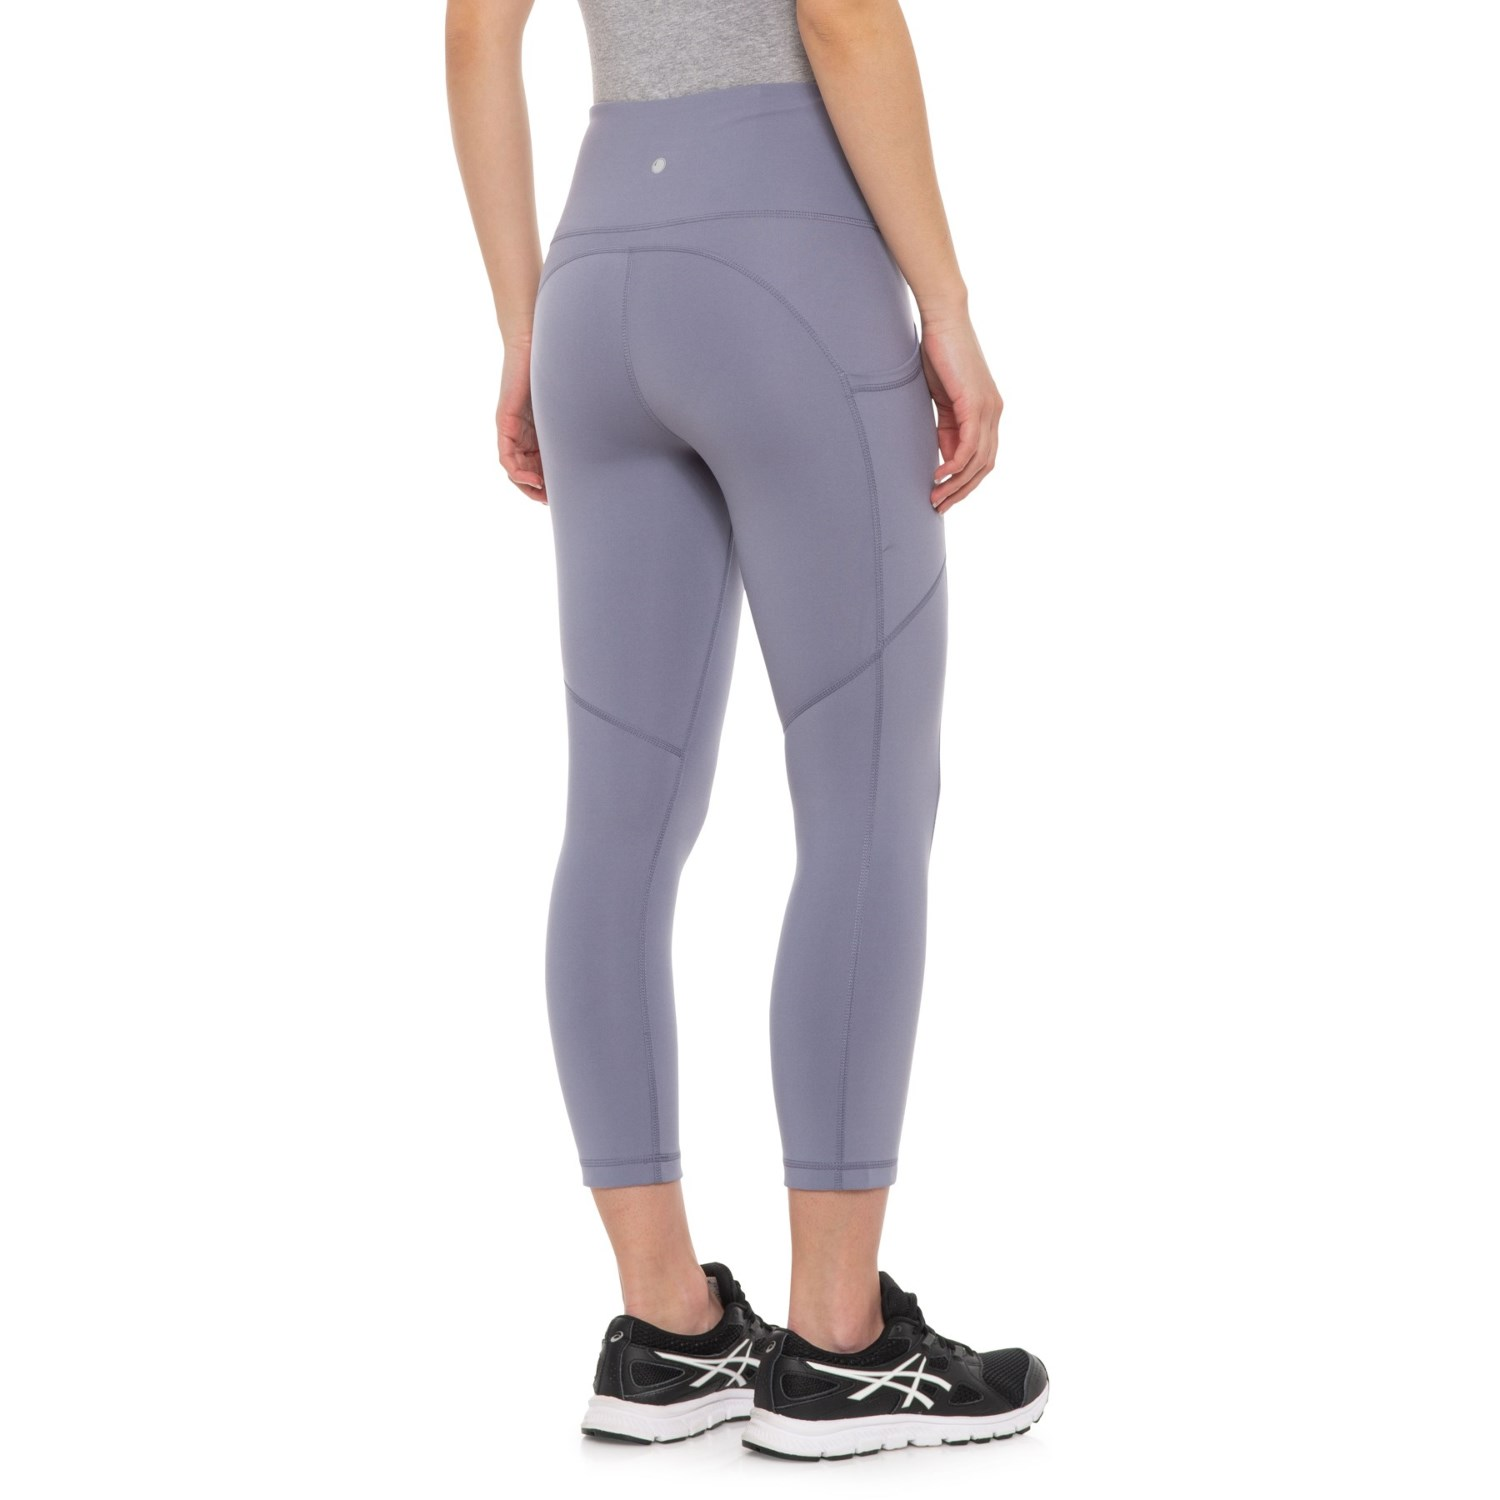 8b6ff0be707b7 Yogalicious Lux Lux Peached Pocket Hi-Rise Capris (For Women) - Save 50%